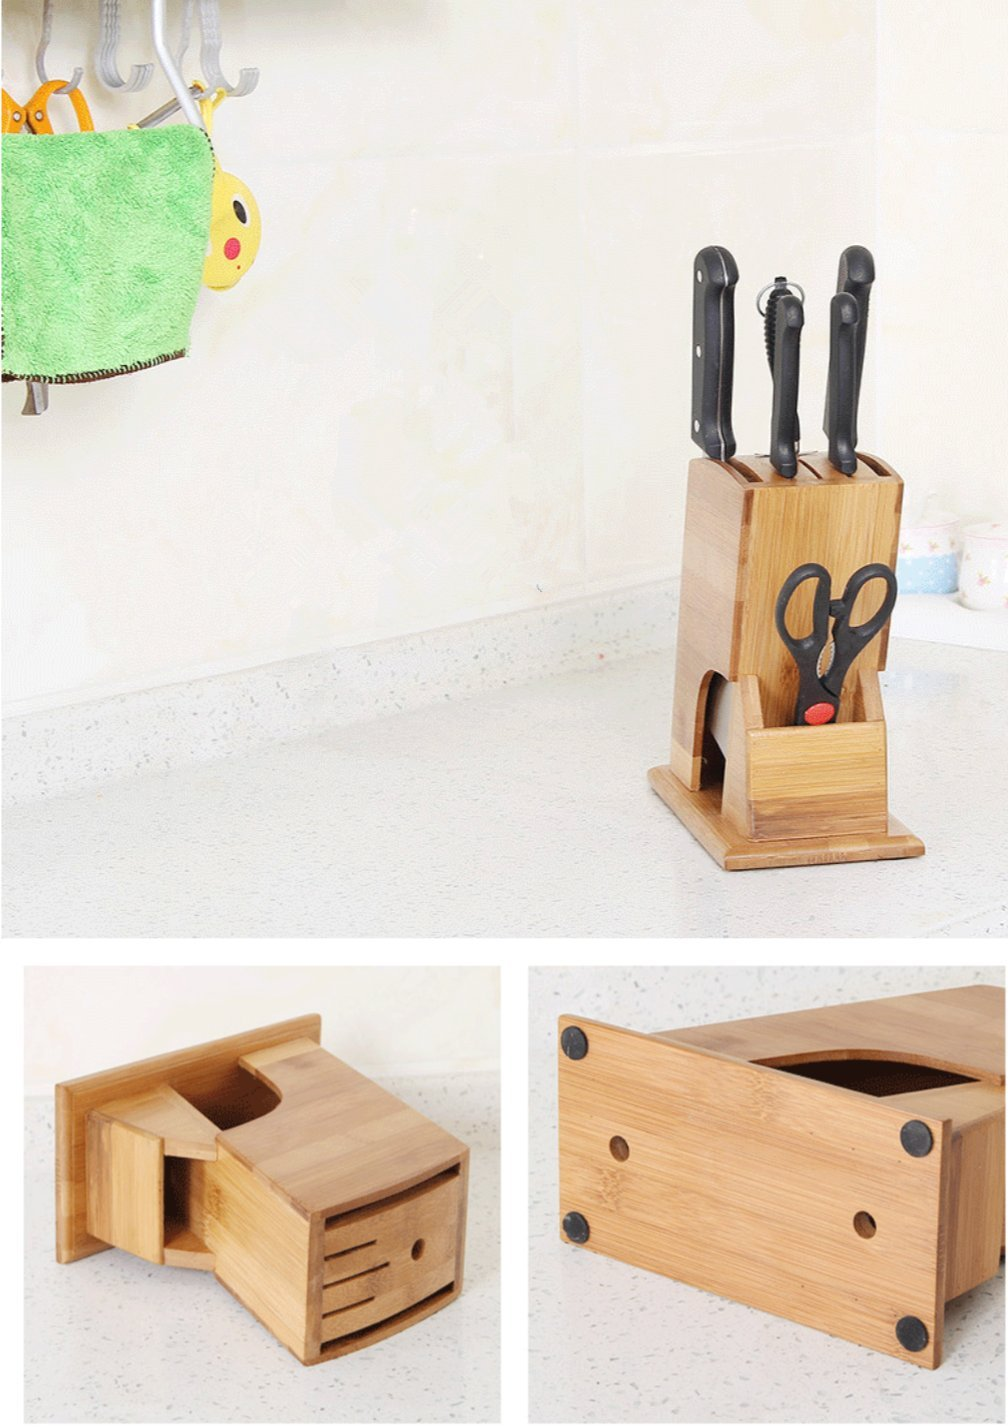 Weikai Bamboo Knife Blocks, Knife Holder Storage Organizer for Chef Knife, Bread Knife, Carving Knife, Utility Knife, Paring Knife, Steak Knife, and Scissors (without knives)